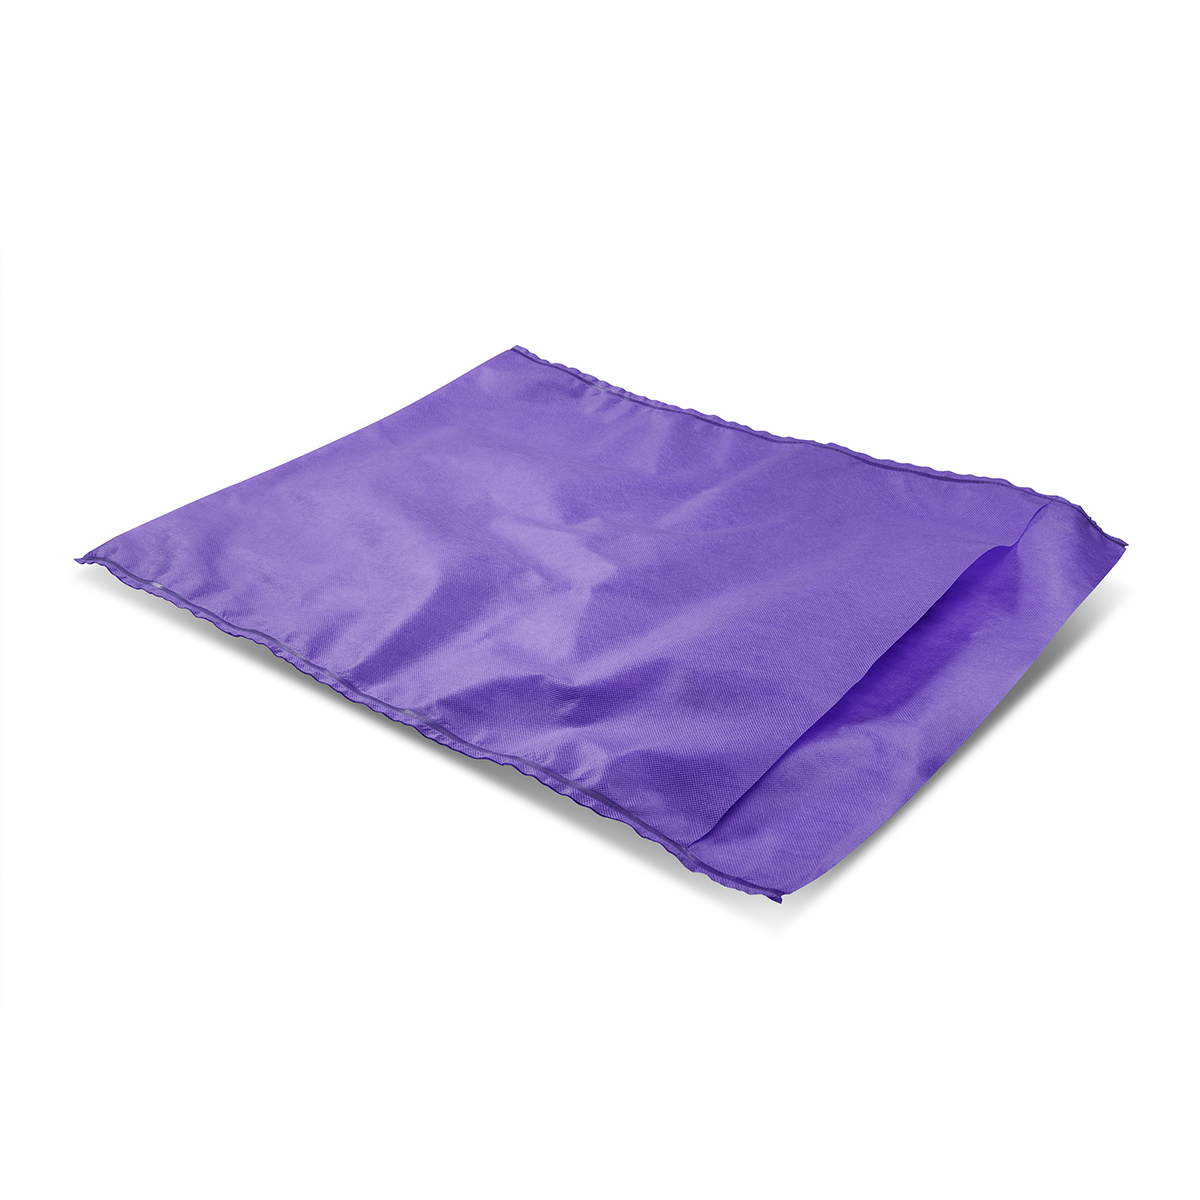 Purple Transport Bag Image